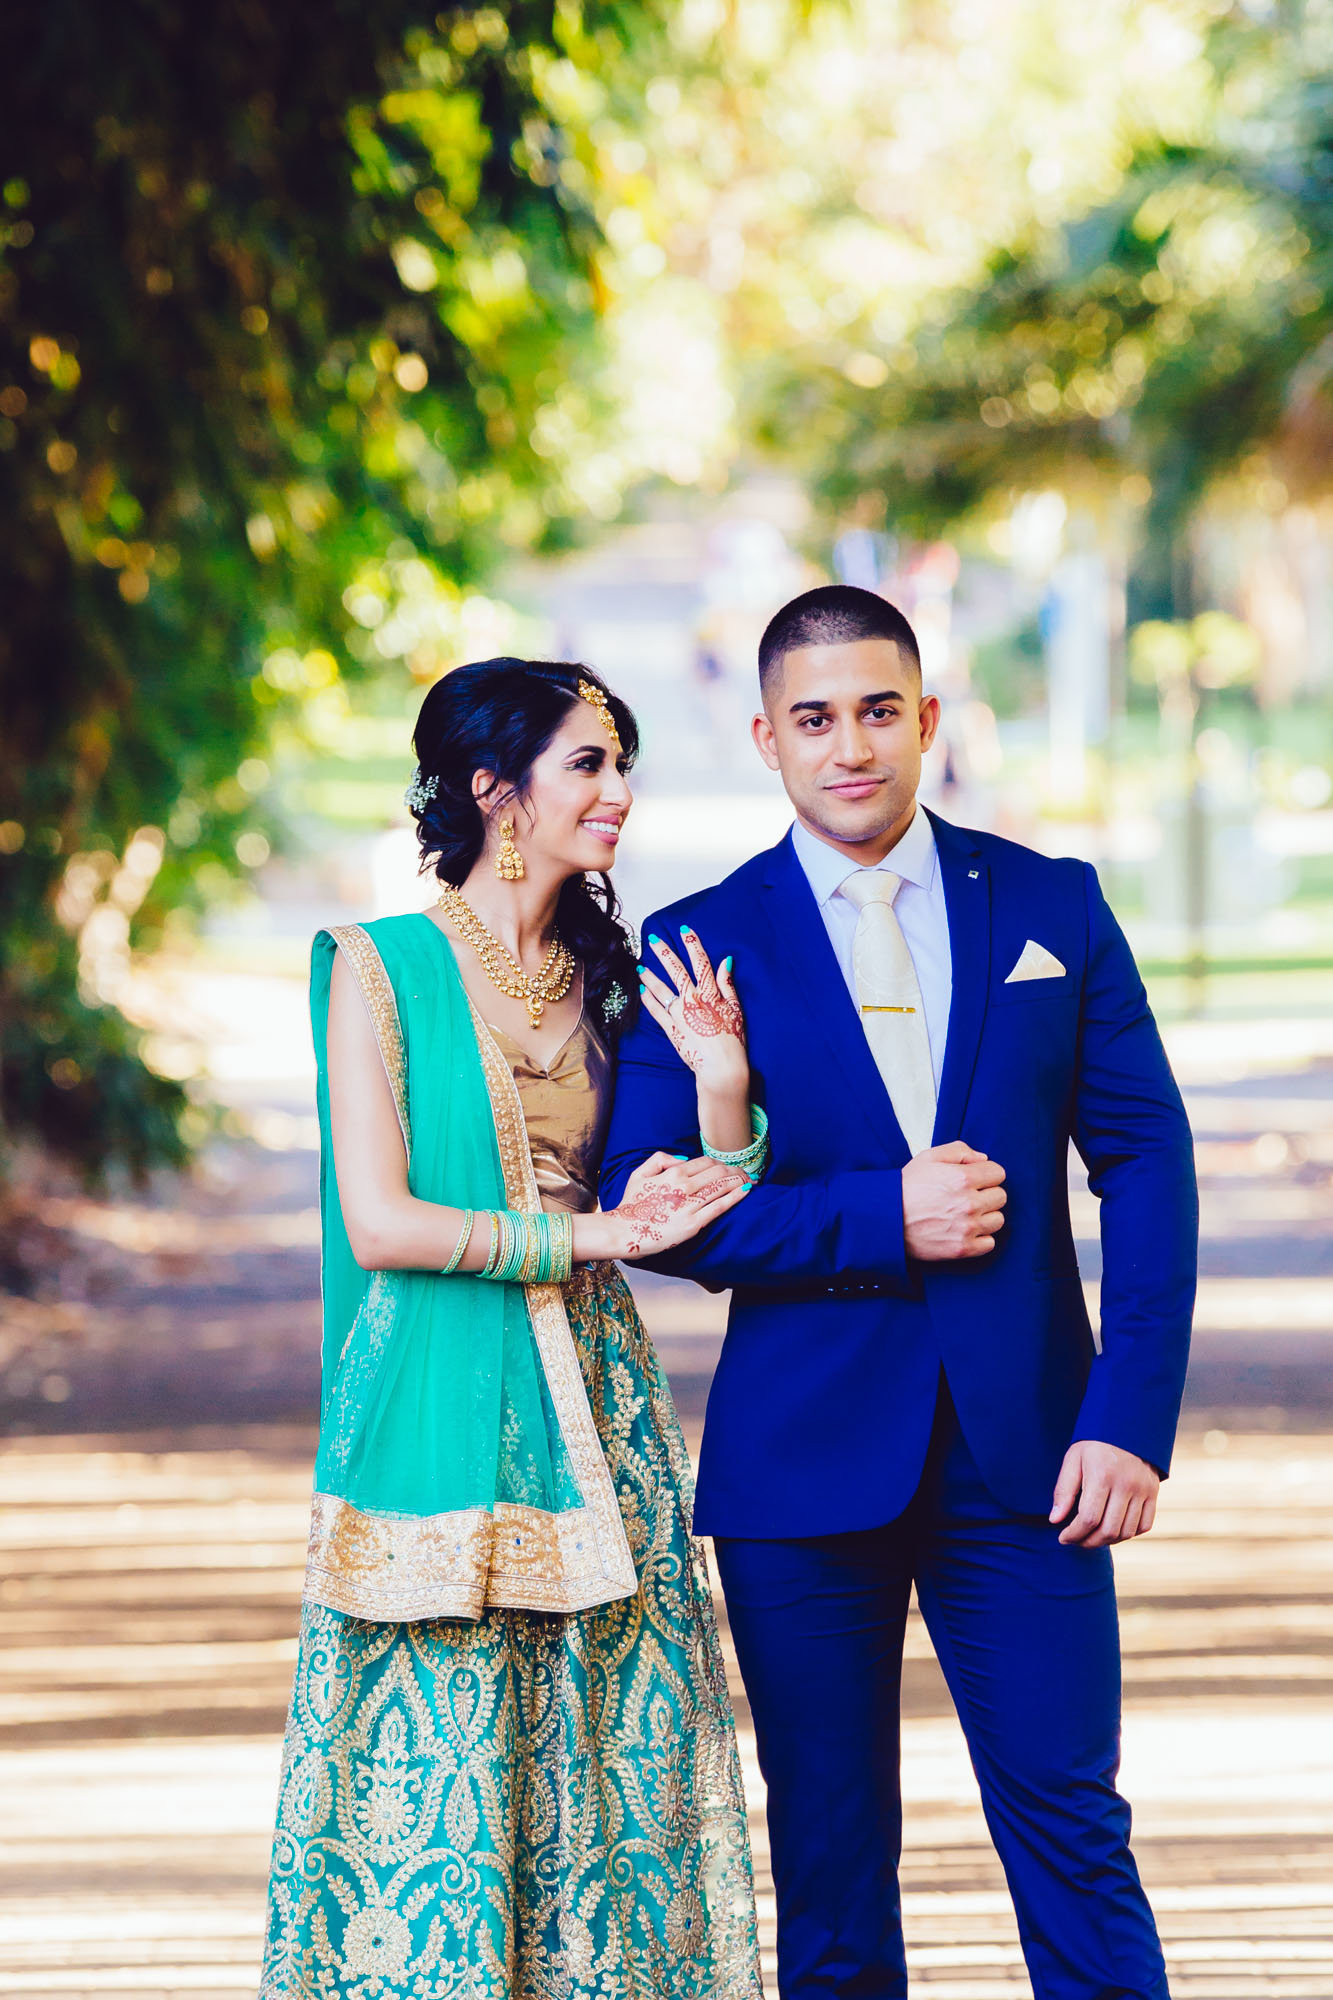 Ashmini_Shemsher_Indian_Engagement_Party_Ceremony_Portraits_BrisbaneCity_AnnaOsetroff_Photographer_Factory51_Reception_Web-5